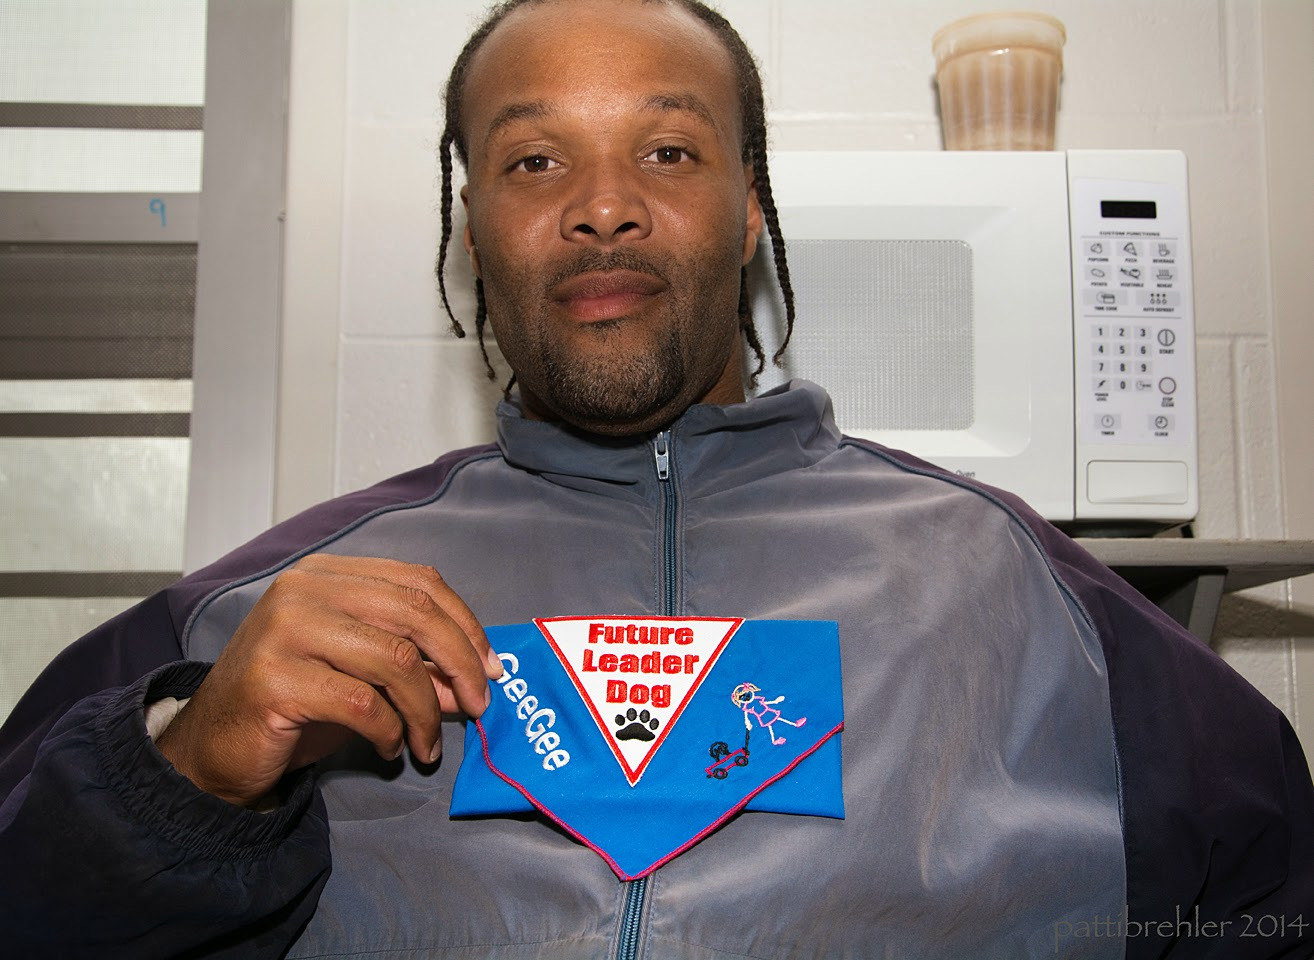 A head and shoulder shot of an African American man wearing a grey and blue jacket. He is holding a folded blue Future Leader Dog bandana at his chest with his right hand.